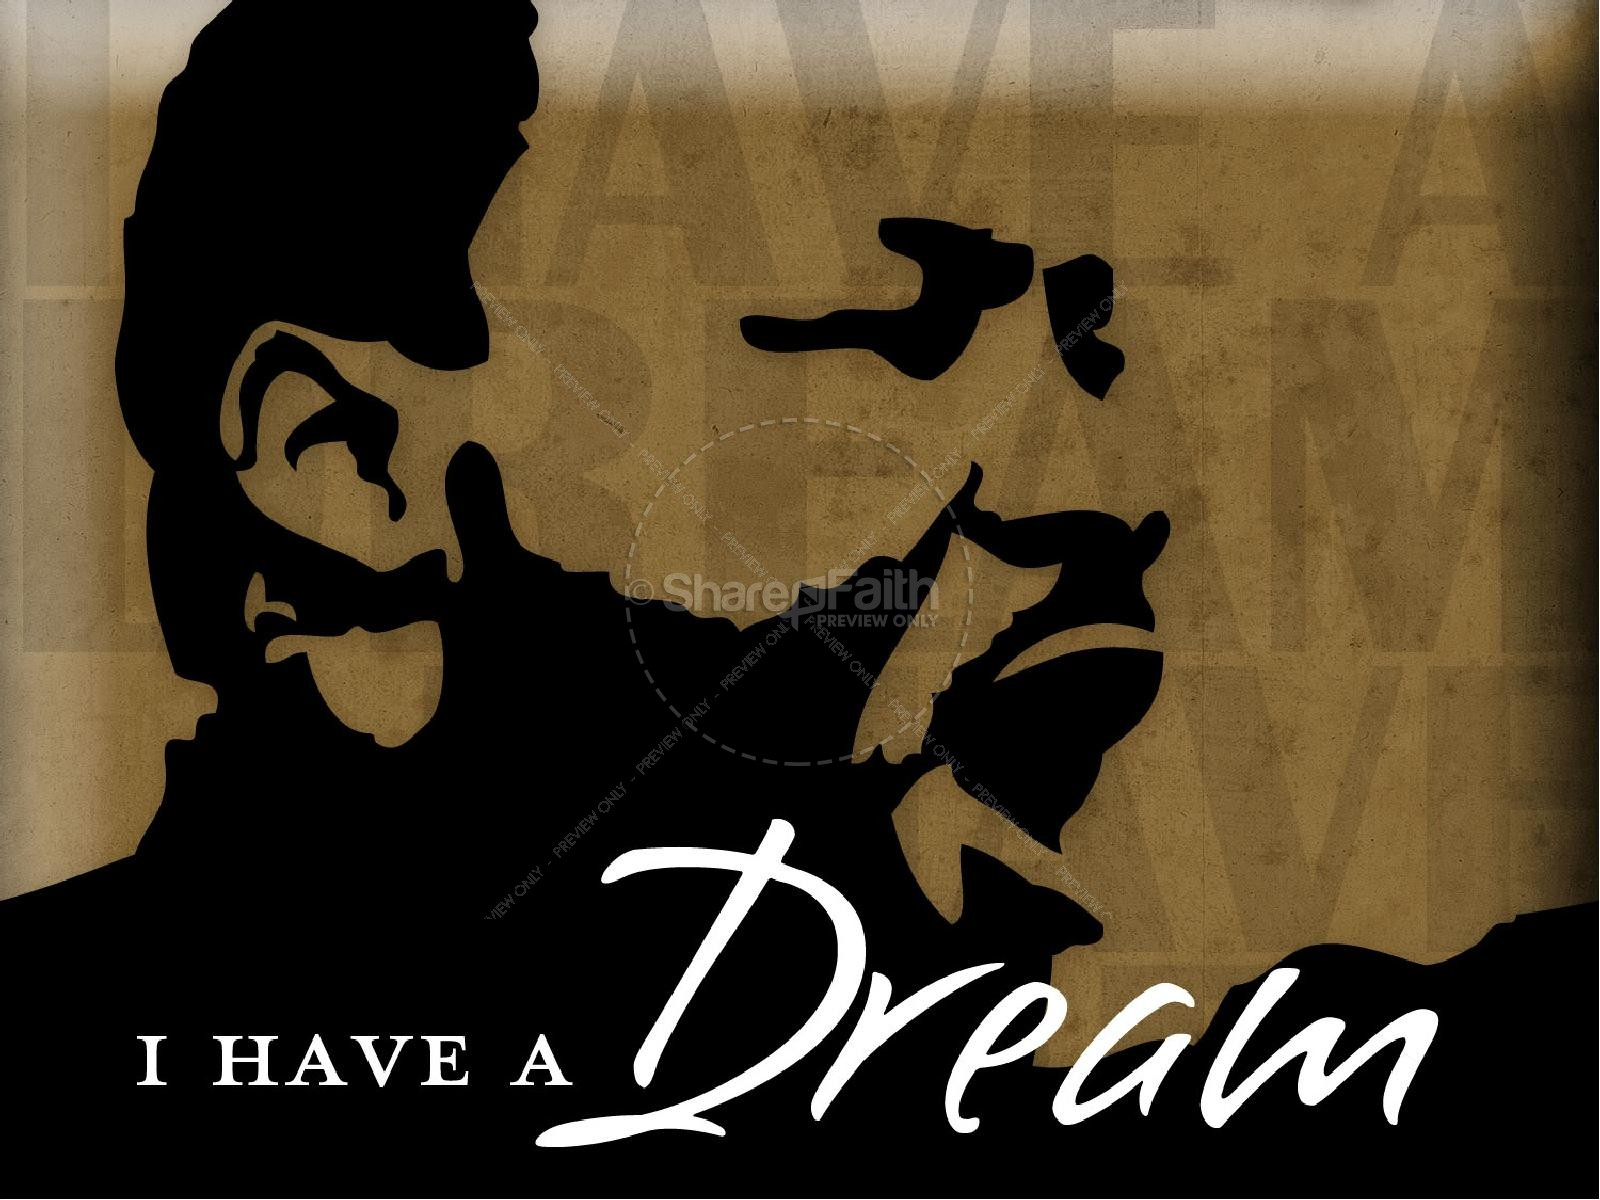 Martin Luther King Dream Slideshow | slide 1